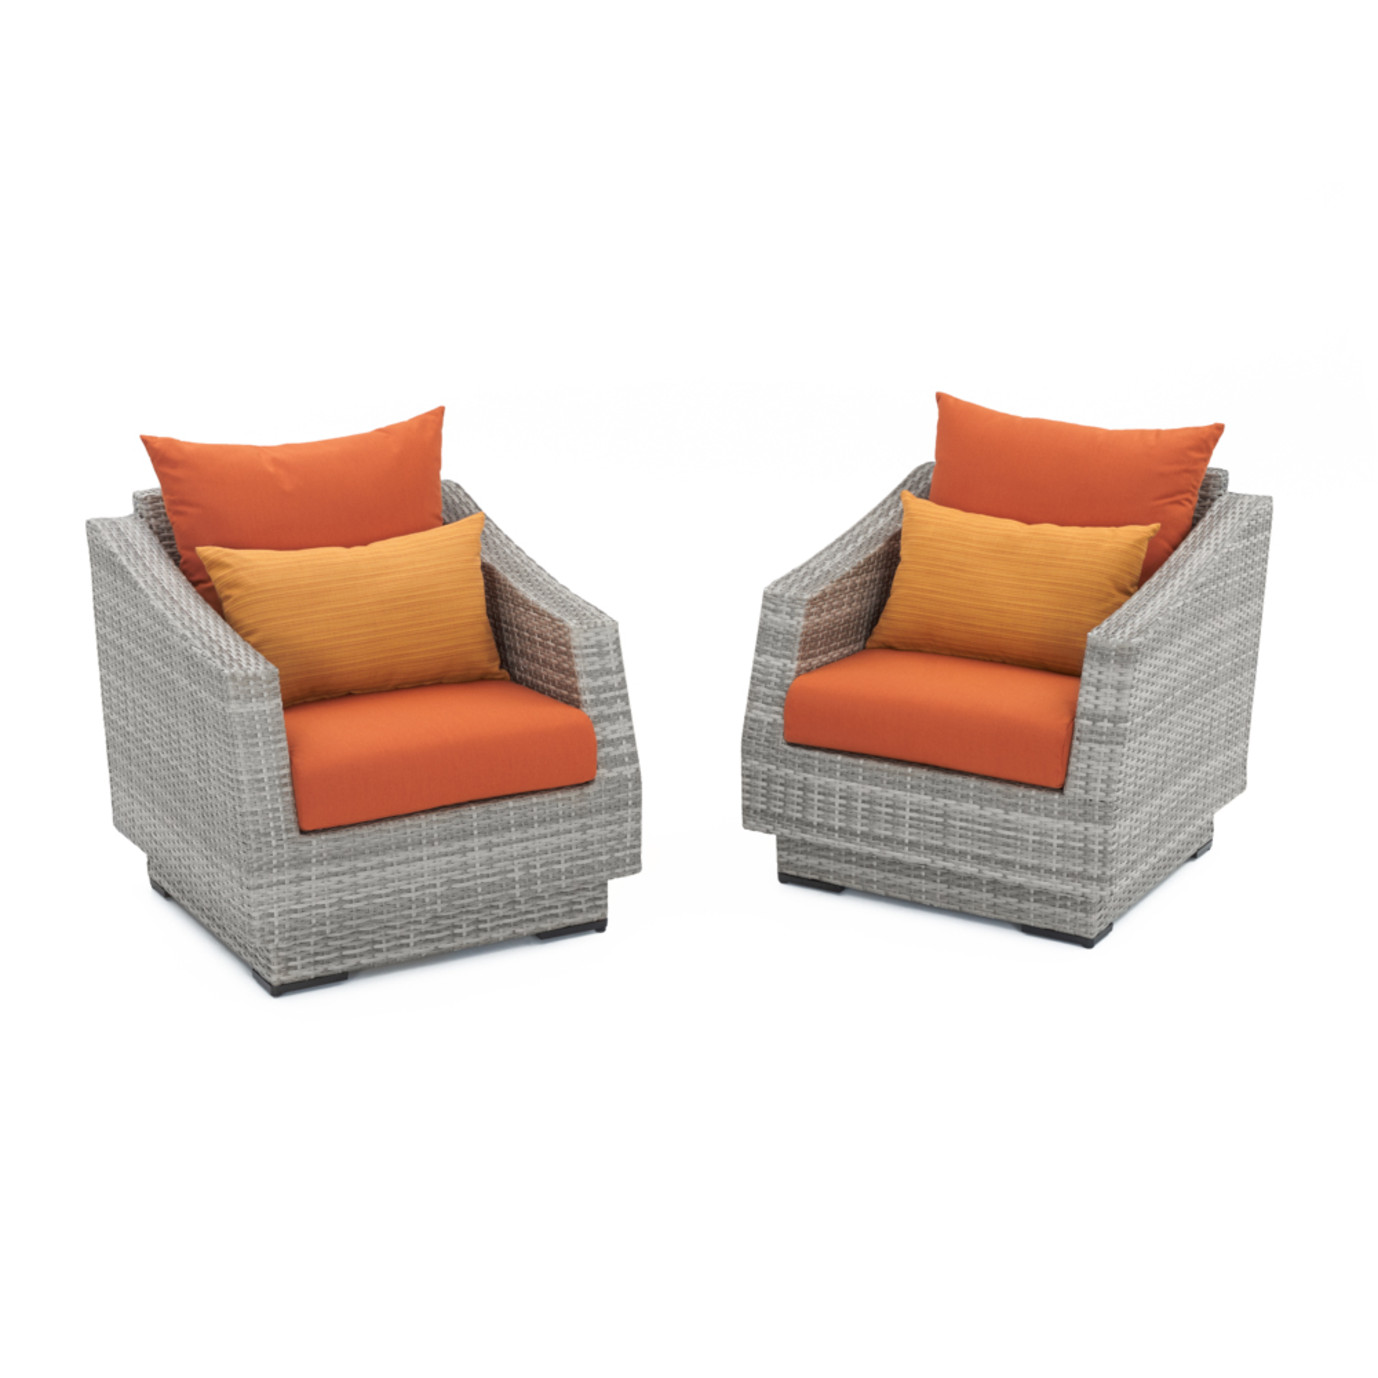 Cannes™ Club Chairs - Tikka Orange